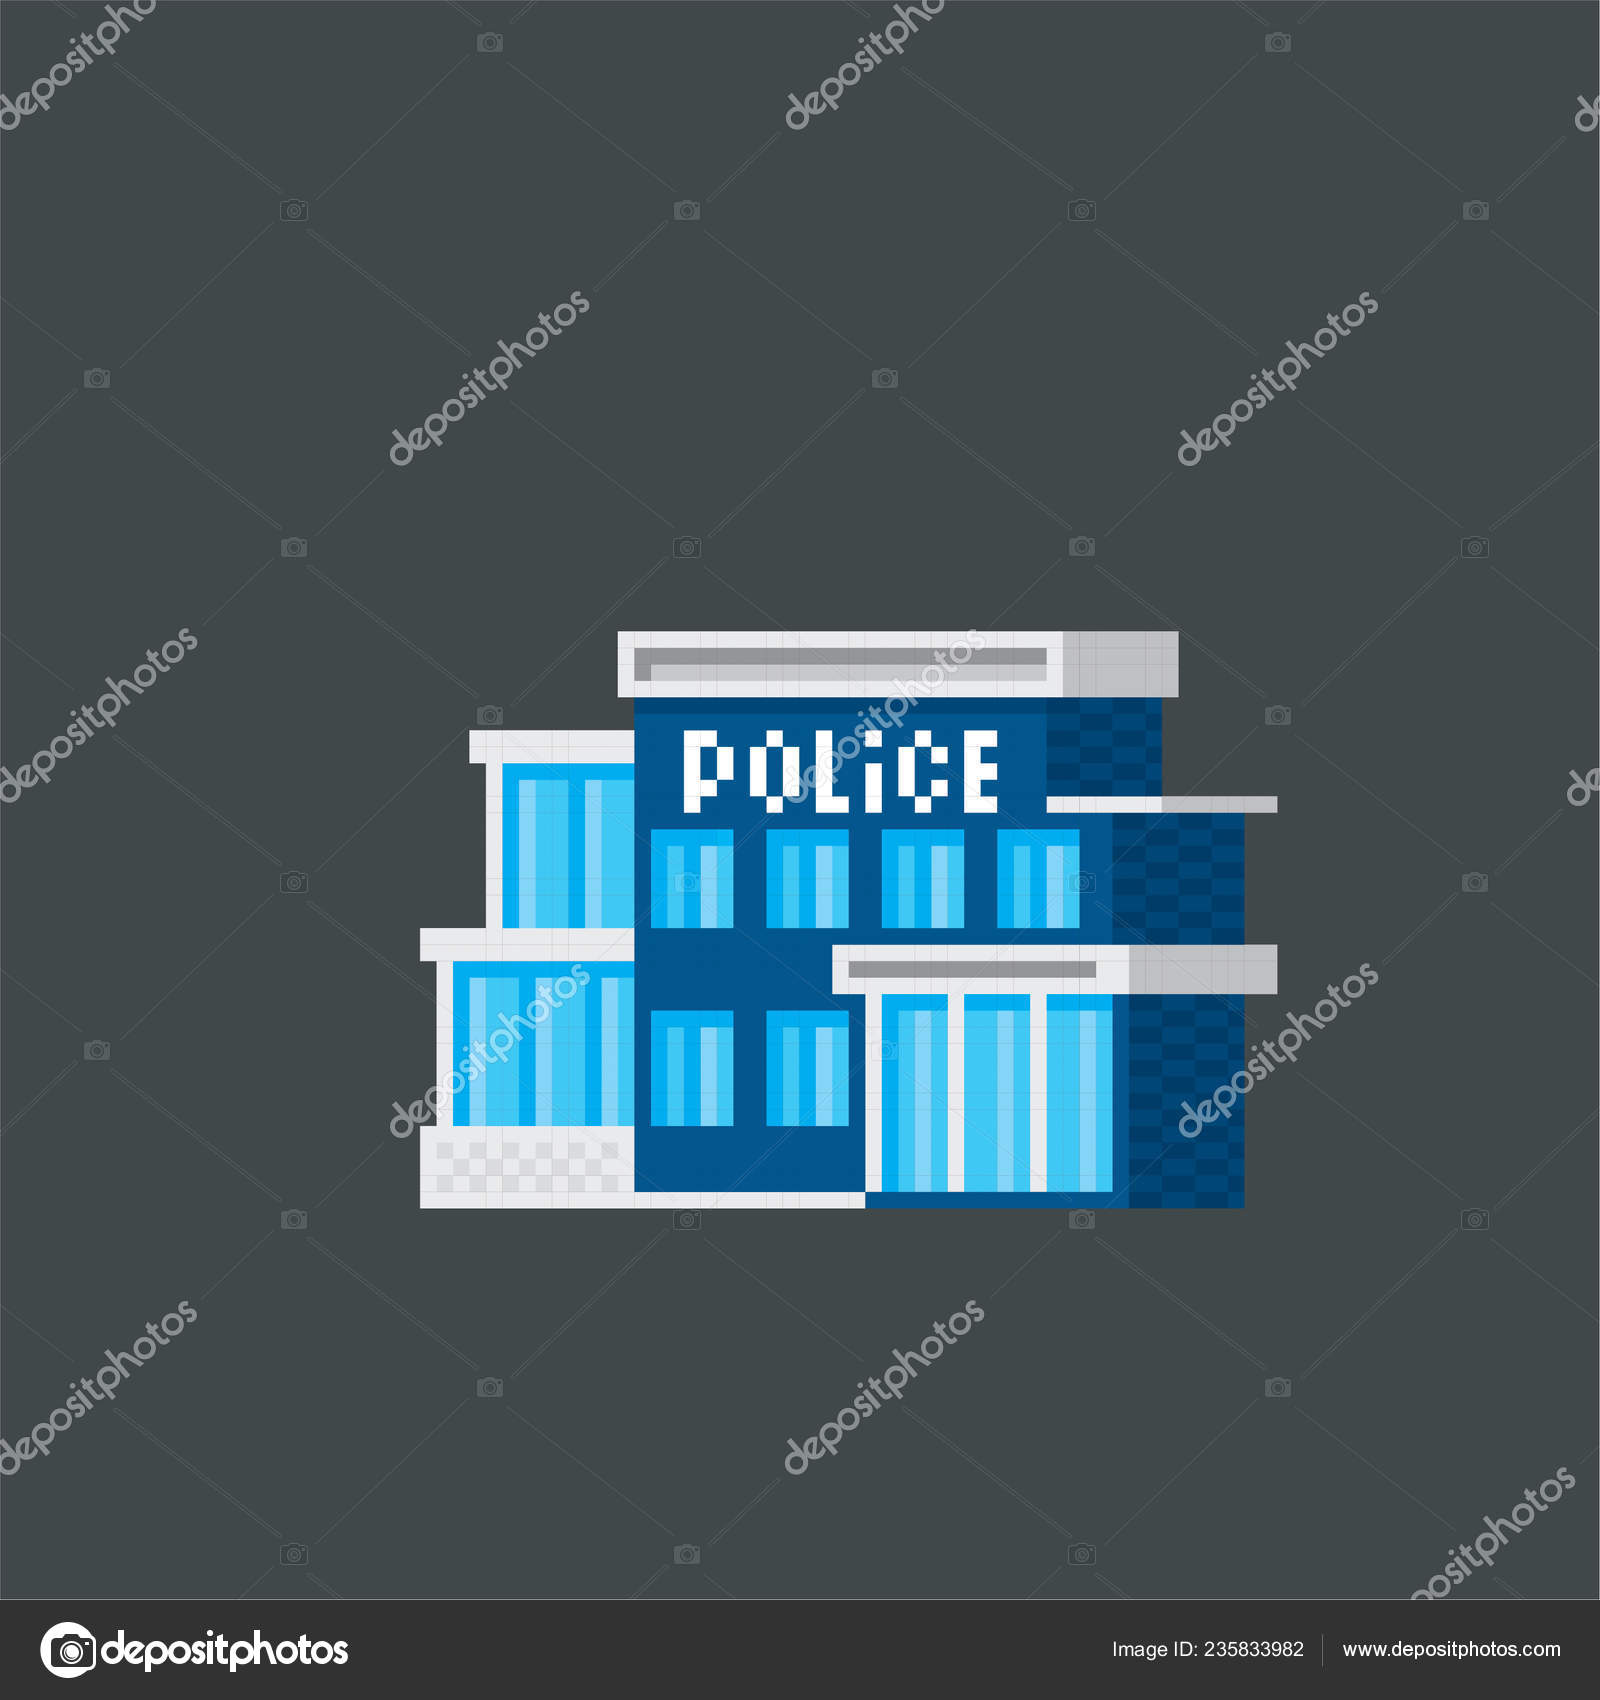 Police station  Pixel art  Old school computer graphic